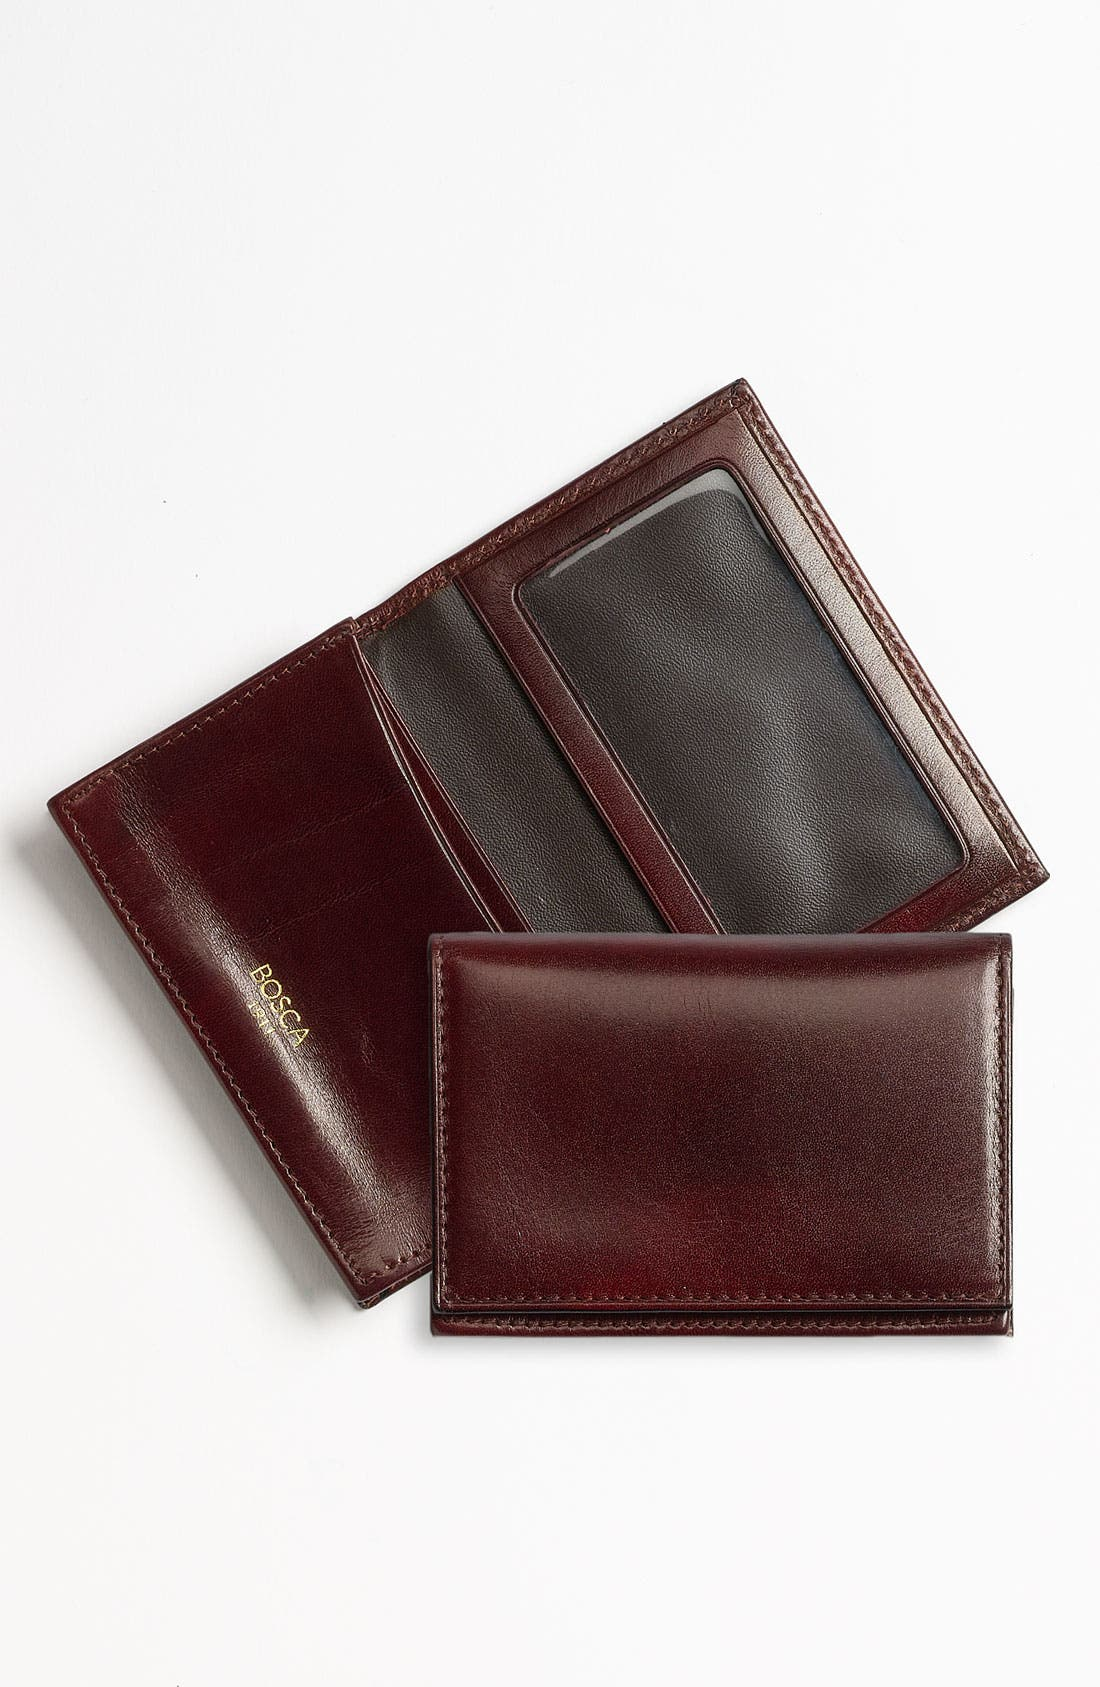 'Old Leather' Gusset Wallet,                             Alternate thumbnail 4, color,                             Dark Brown